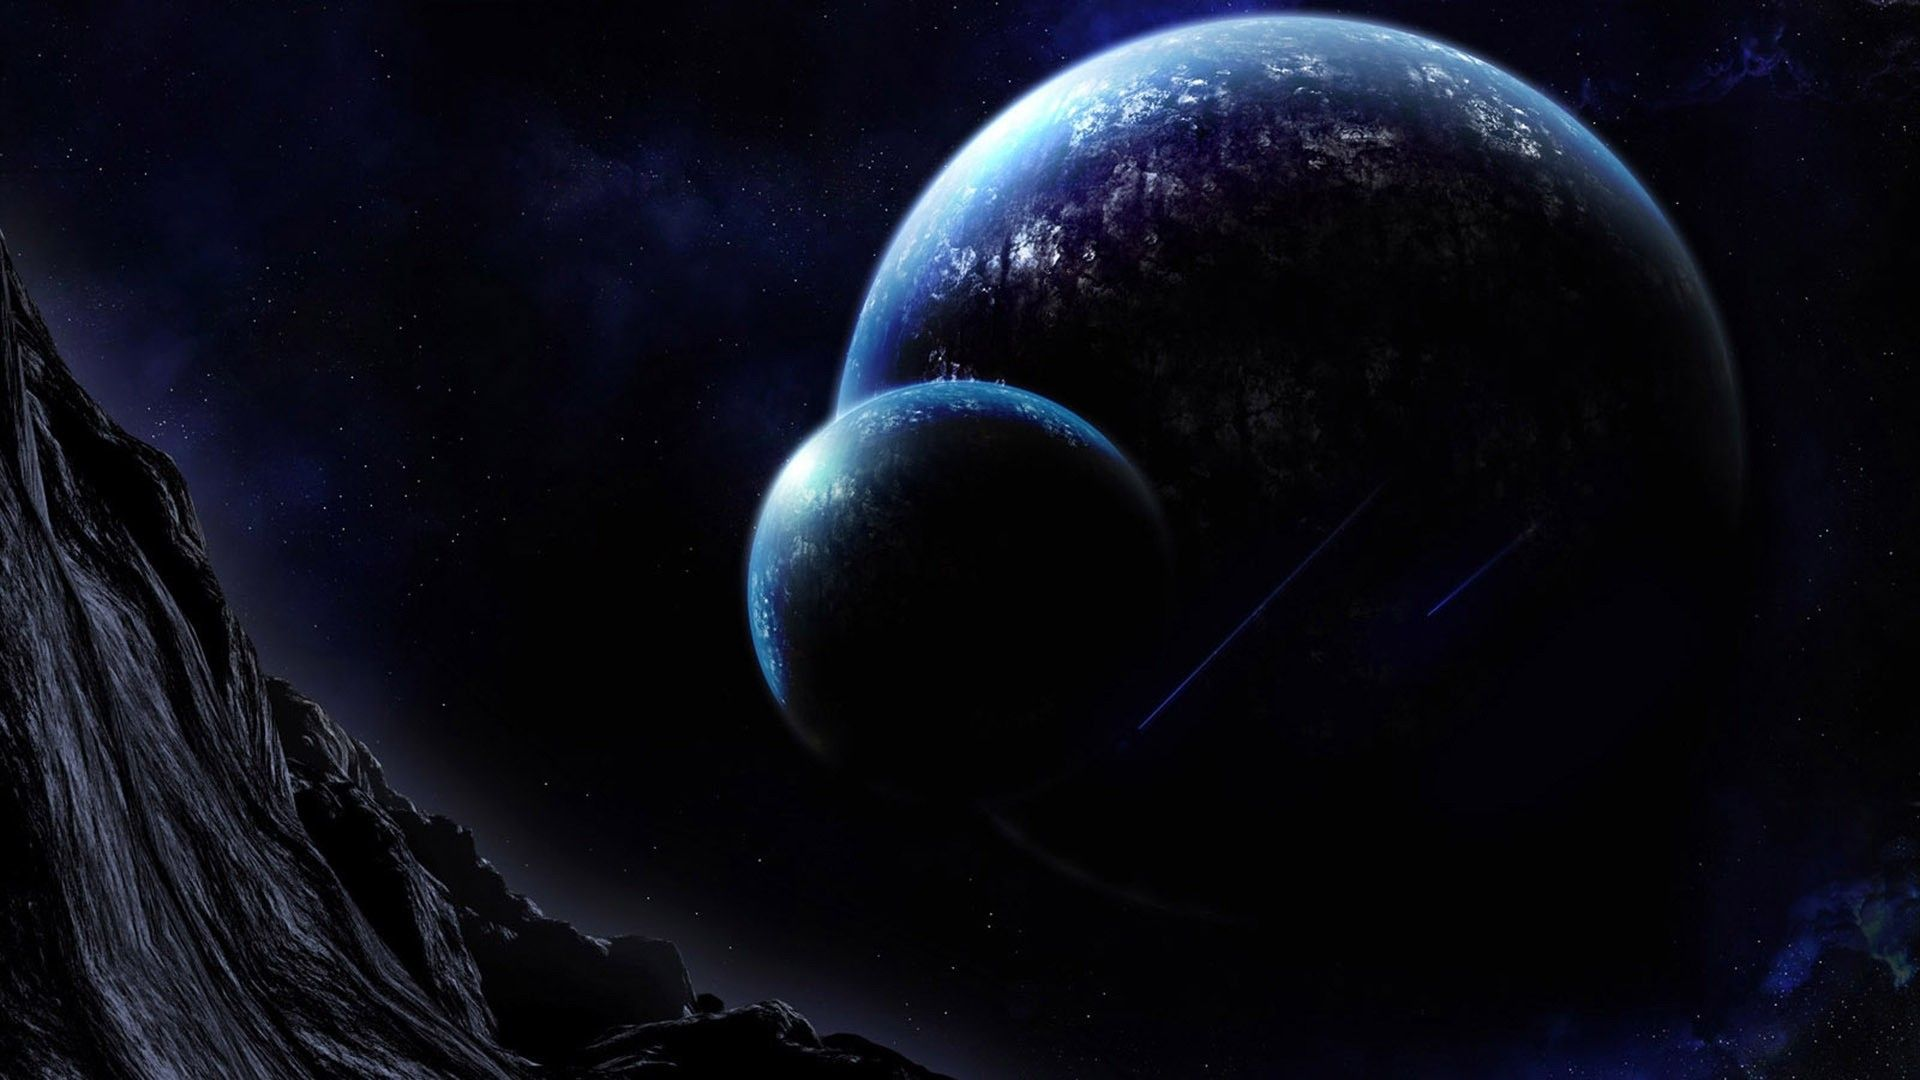 Planet Good Wallpaper